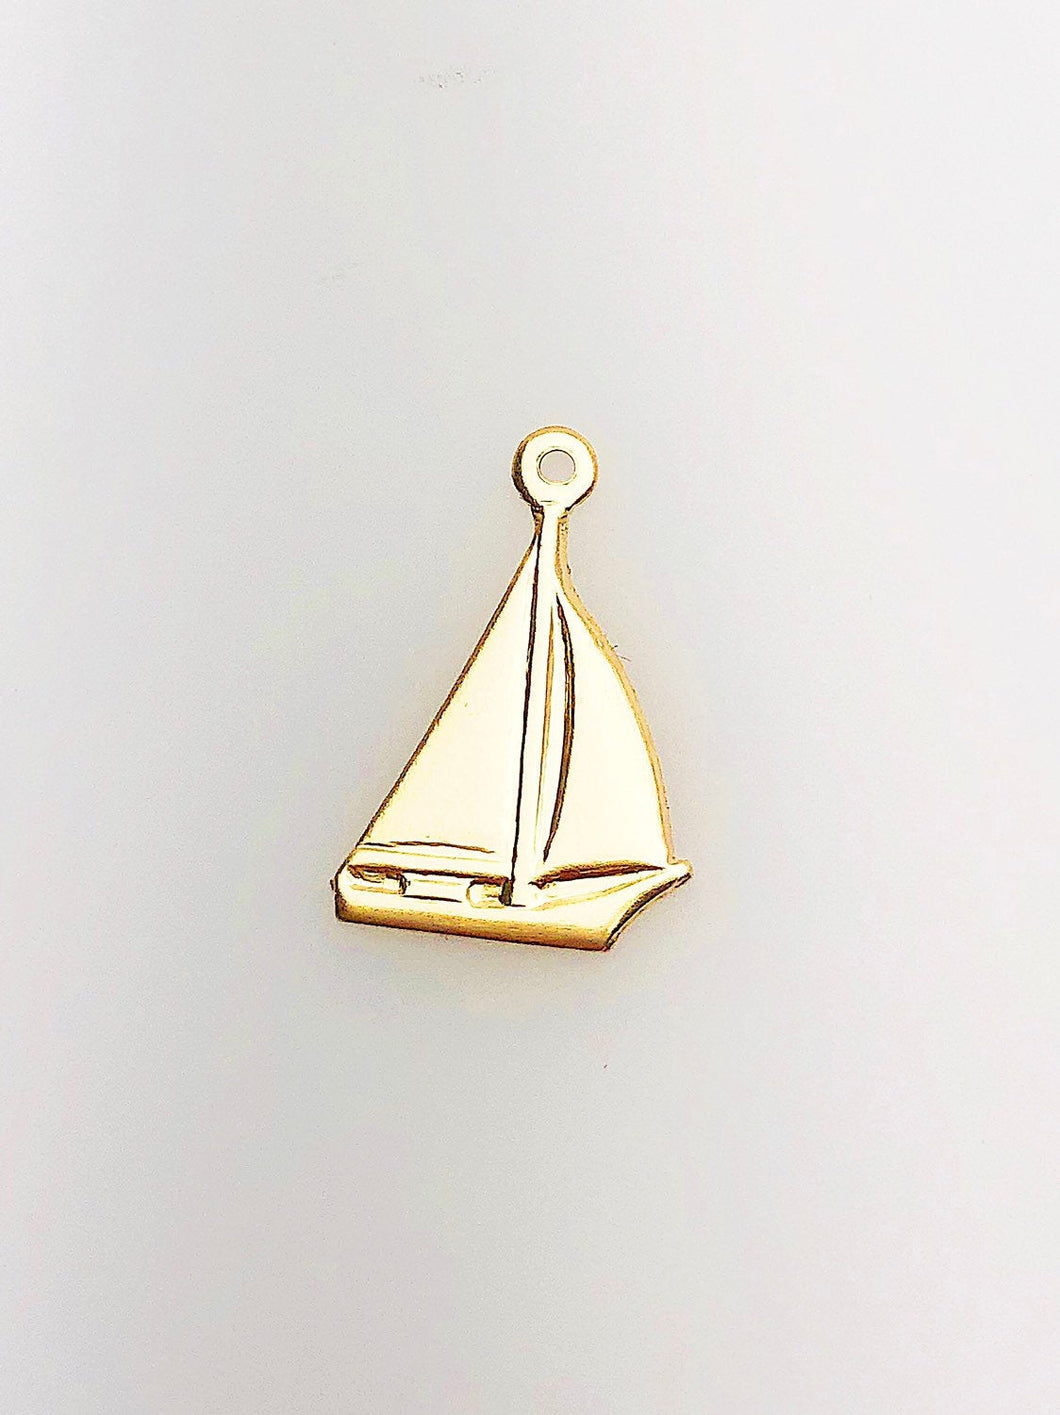 14K Gold Fill Sailboat Charm w/ Ring, 10.0mm, Made in USA - 639